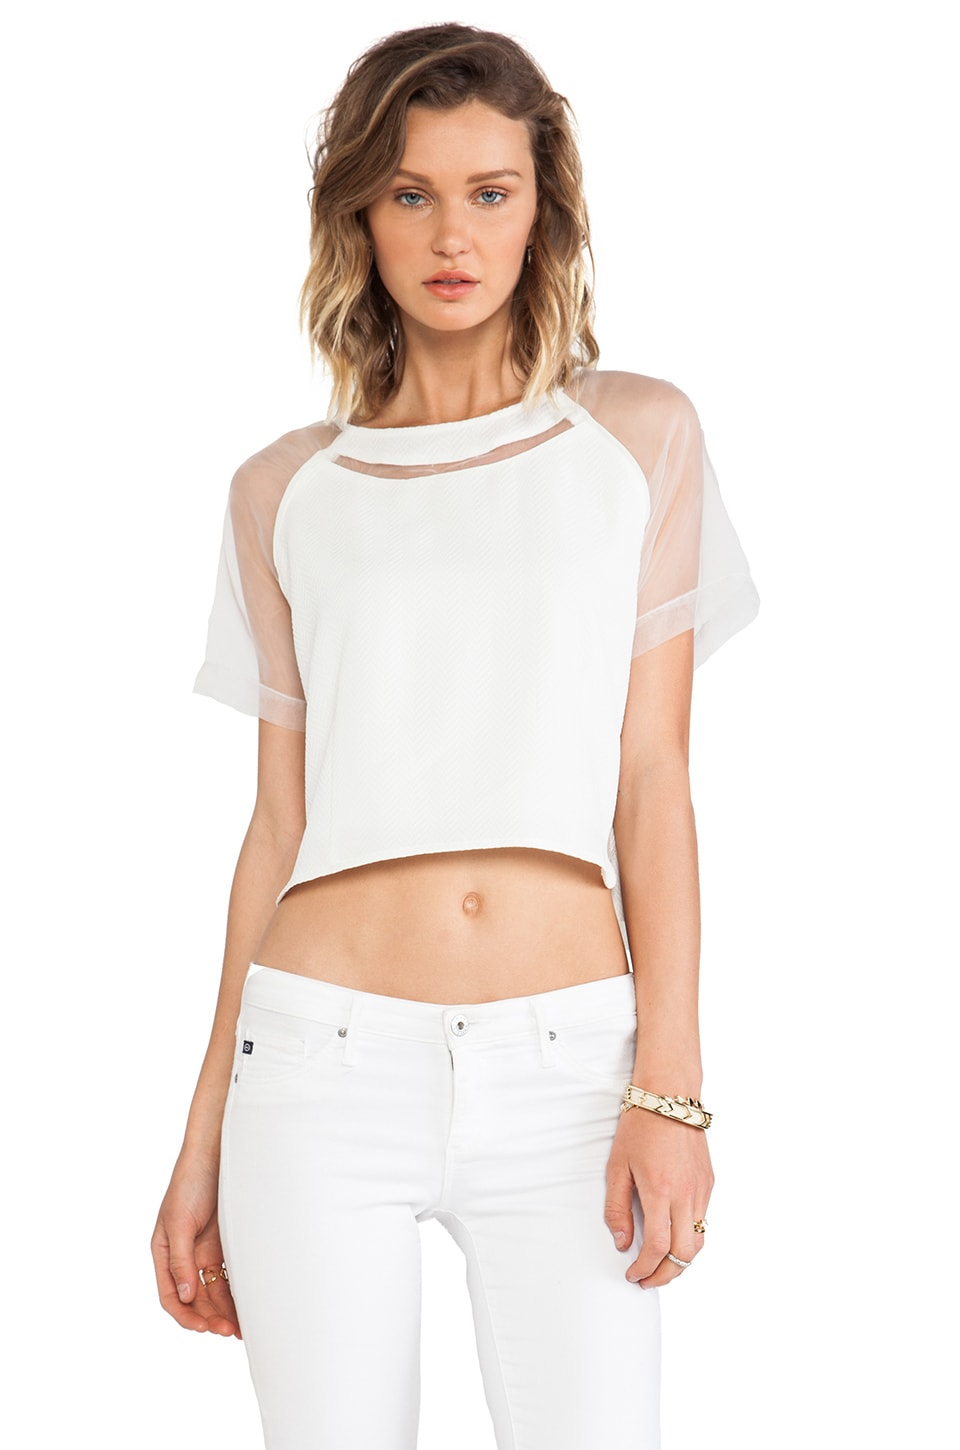 Greylin Aimee Cropped Top in White